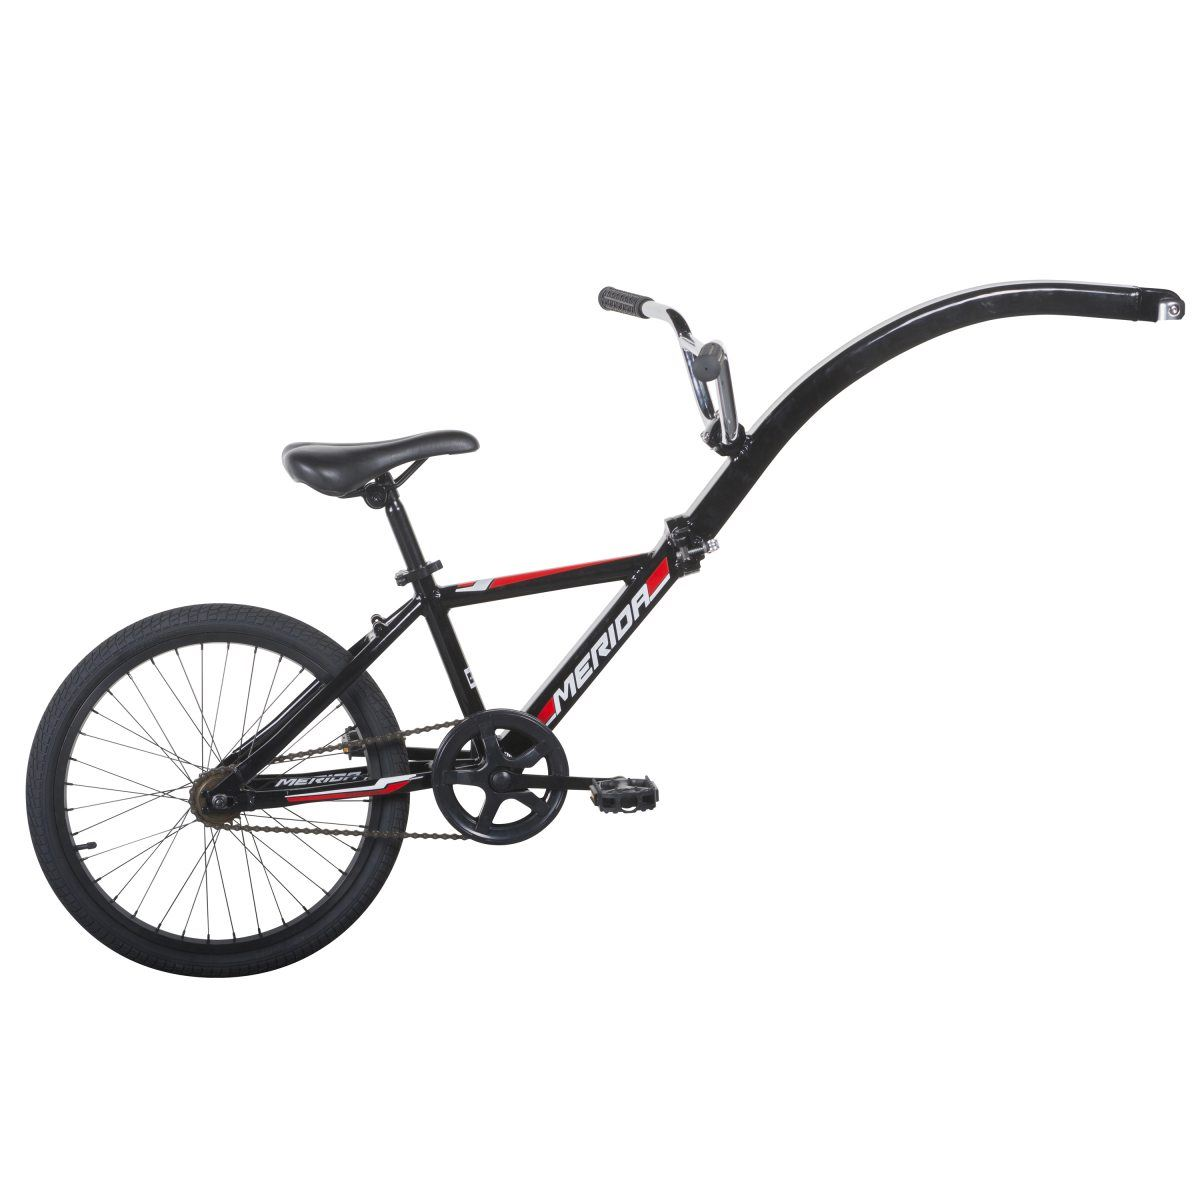 Afterbike 20″, maximum load 38kg, suitable for children from 4 to 8 years old